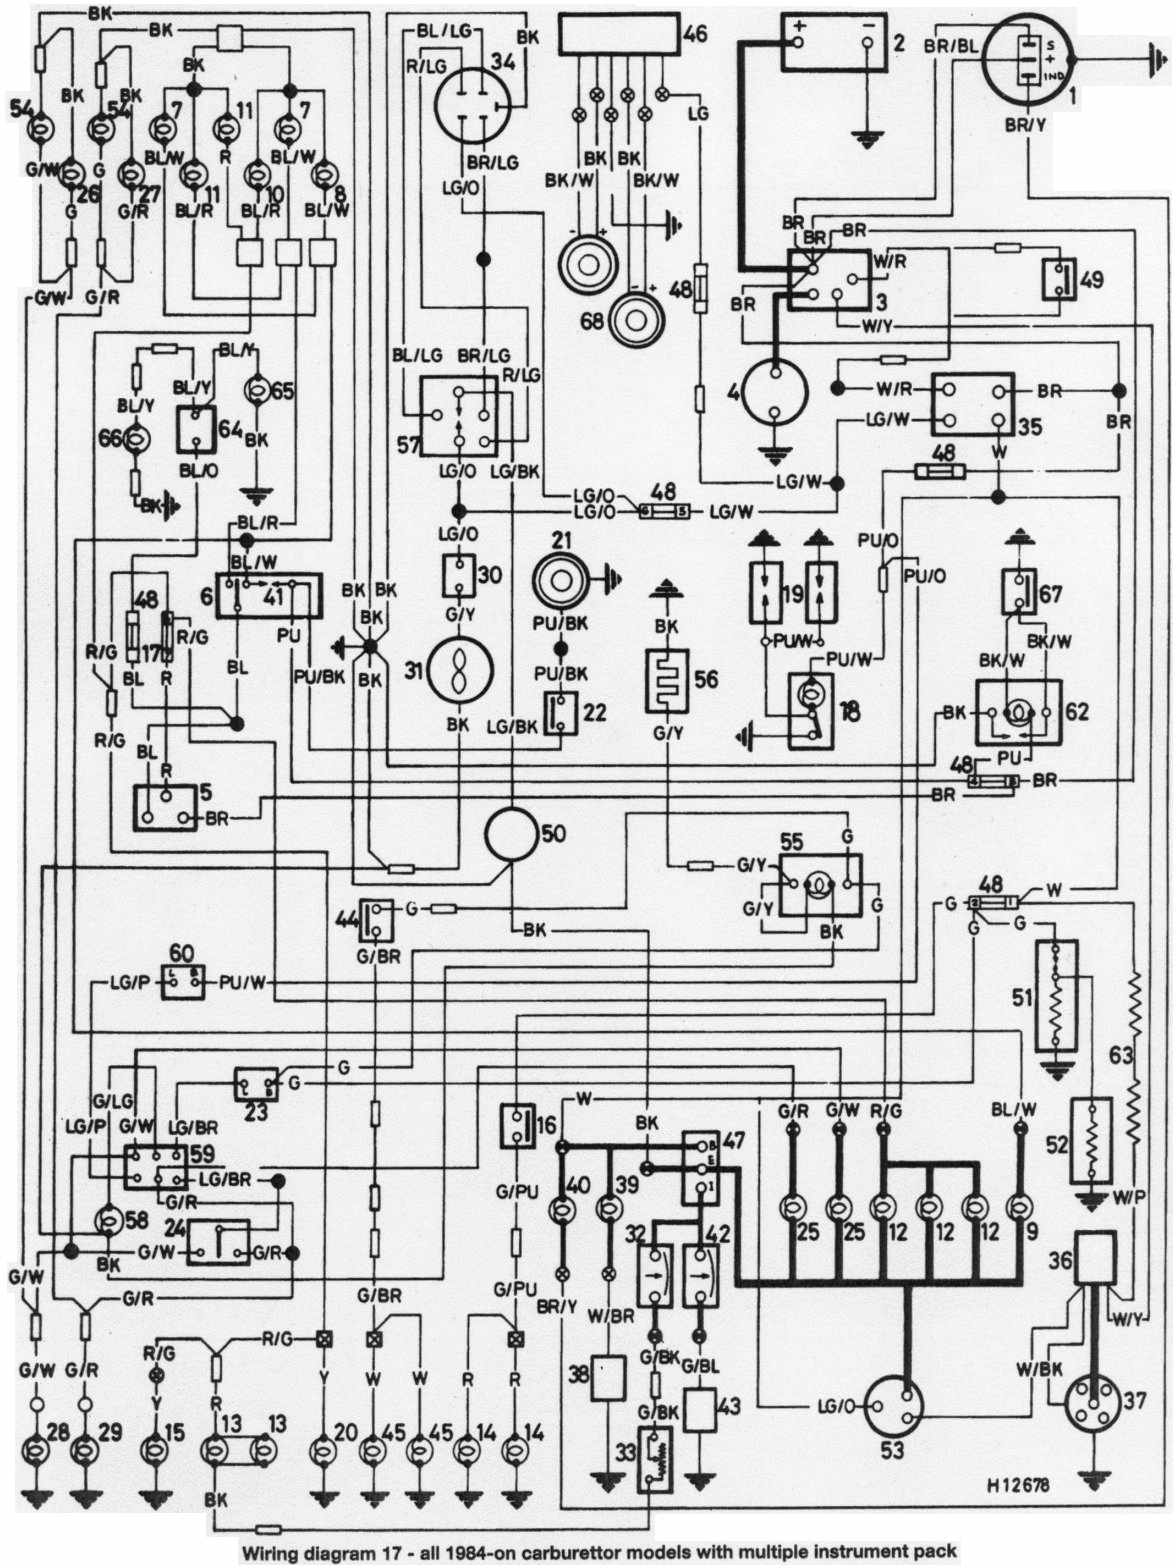 Funky Gmc Motorhome Wiring Diagram Embellishment - Electrical and ...